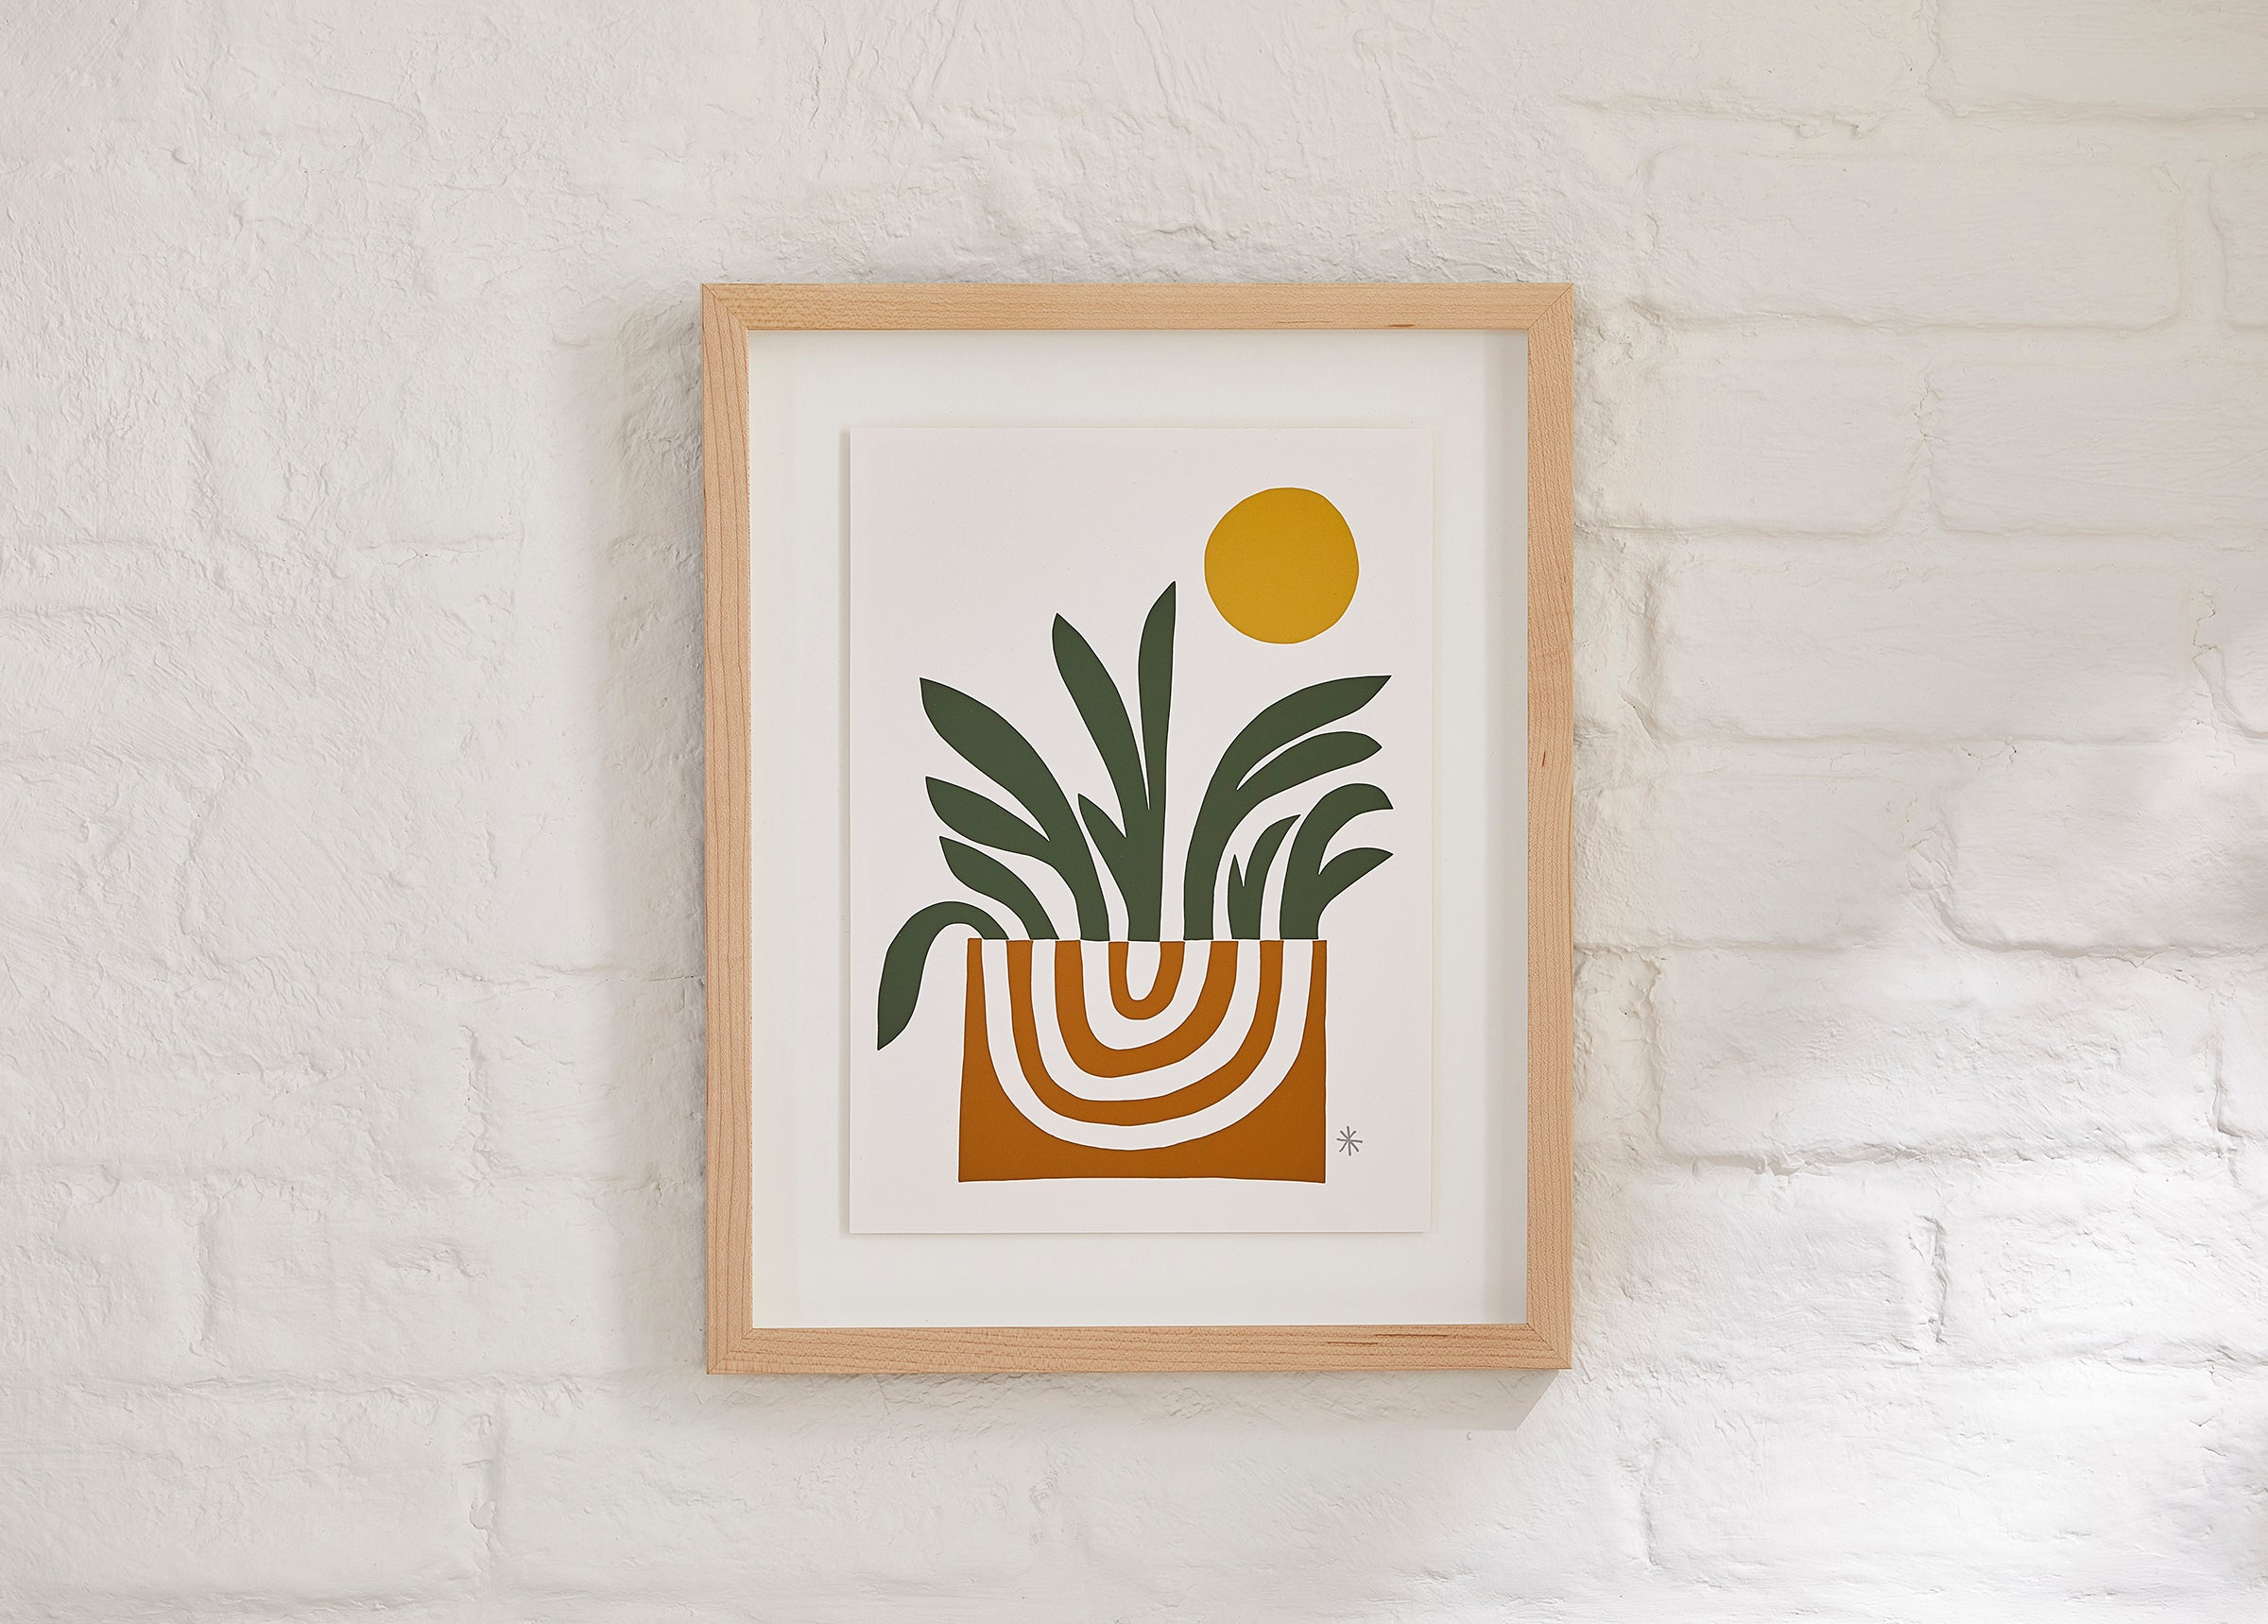 """""""Sprout"""" by CDR, selected for an Earthy Minimalist interior by Simply Framed founder, Dara Segal, and the team at Brooklinen"""